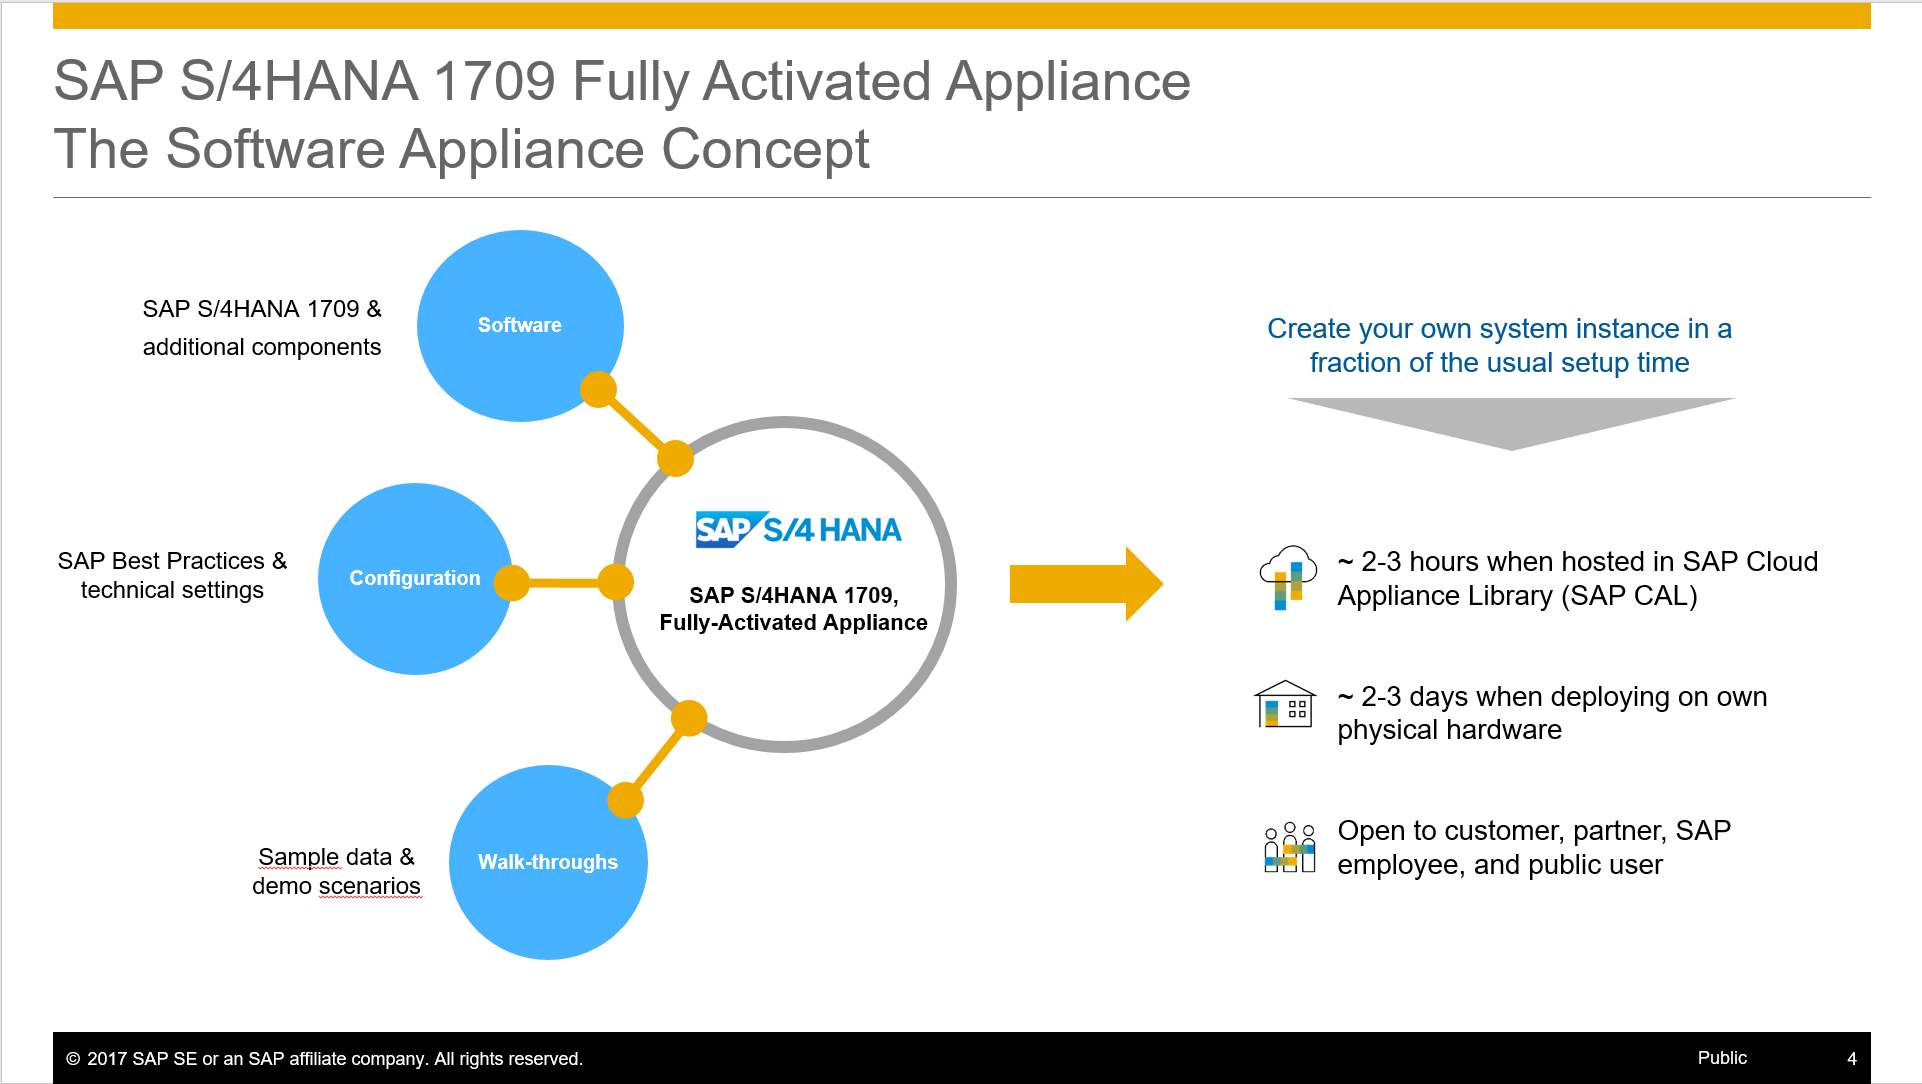 SAP S/4HANA 1709 Fully-Activated Appliance: Create your SAP